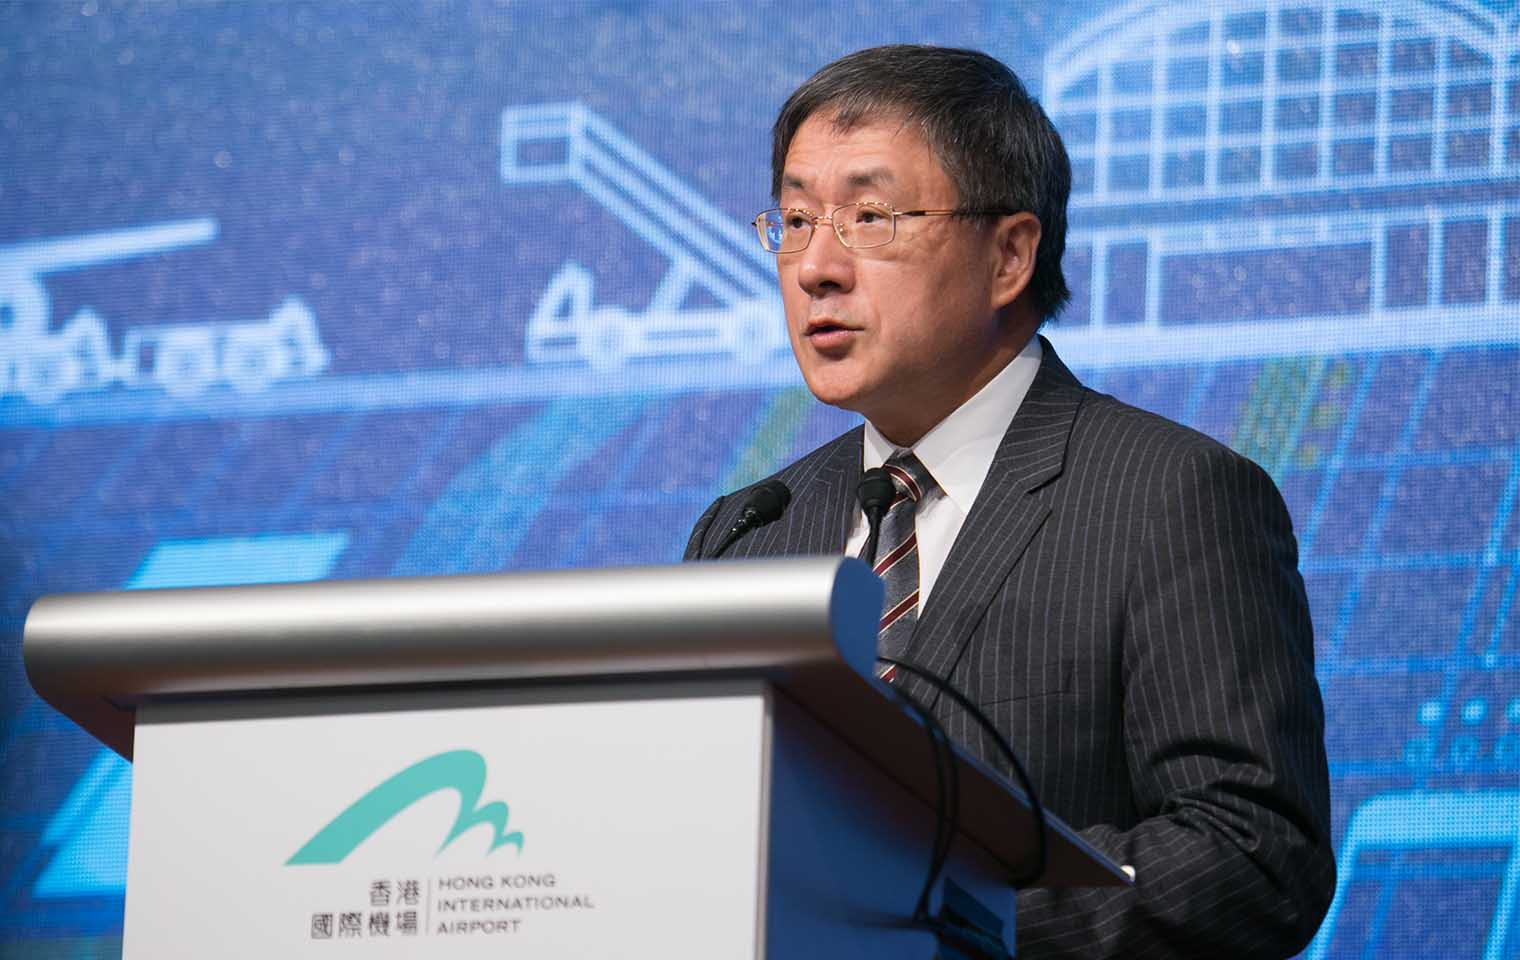 <strong>Mr. Wing Hing Cheuk</strong><br>Innovation and Technology Bureau